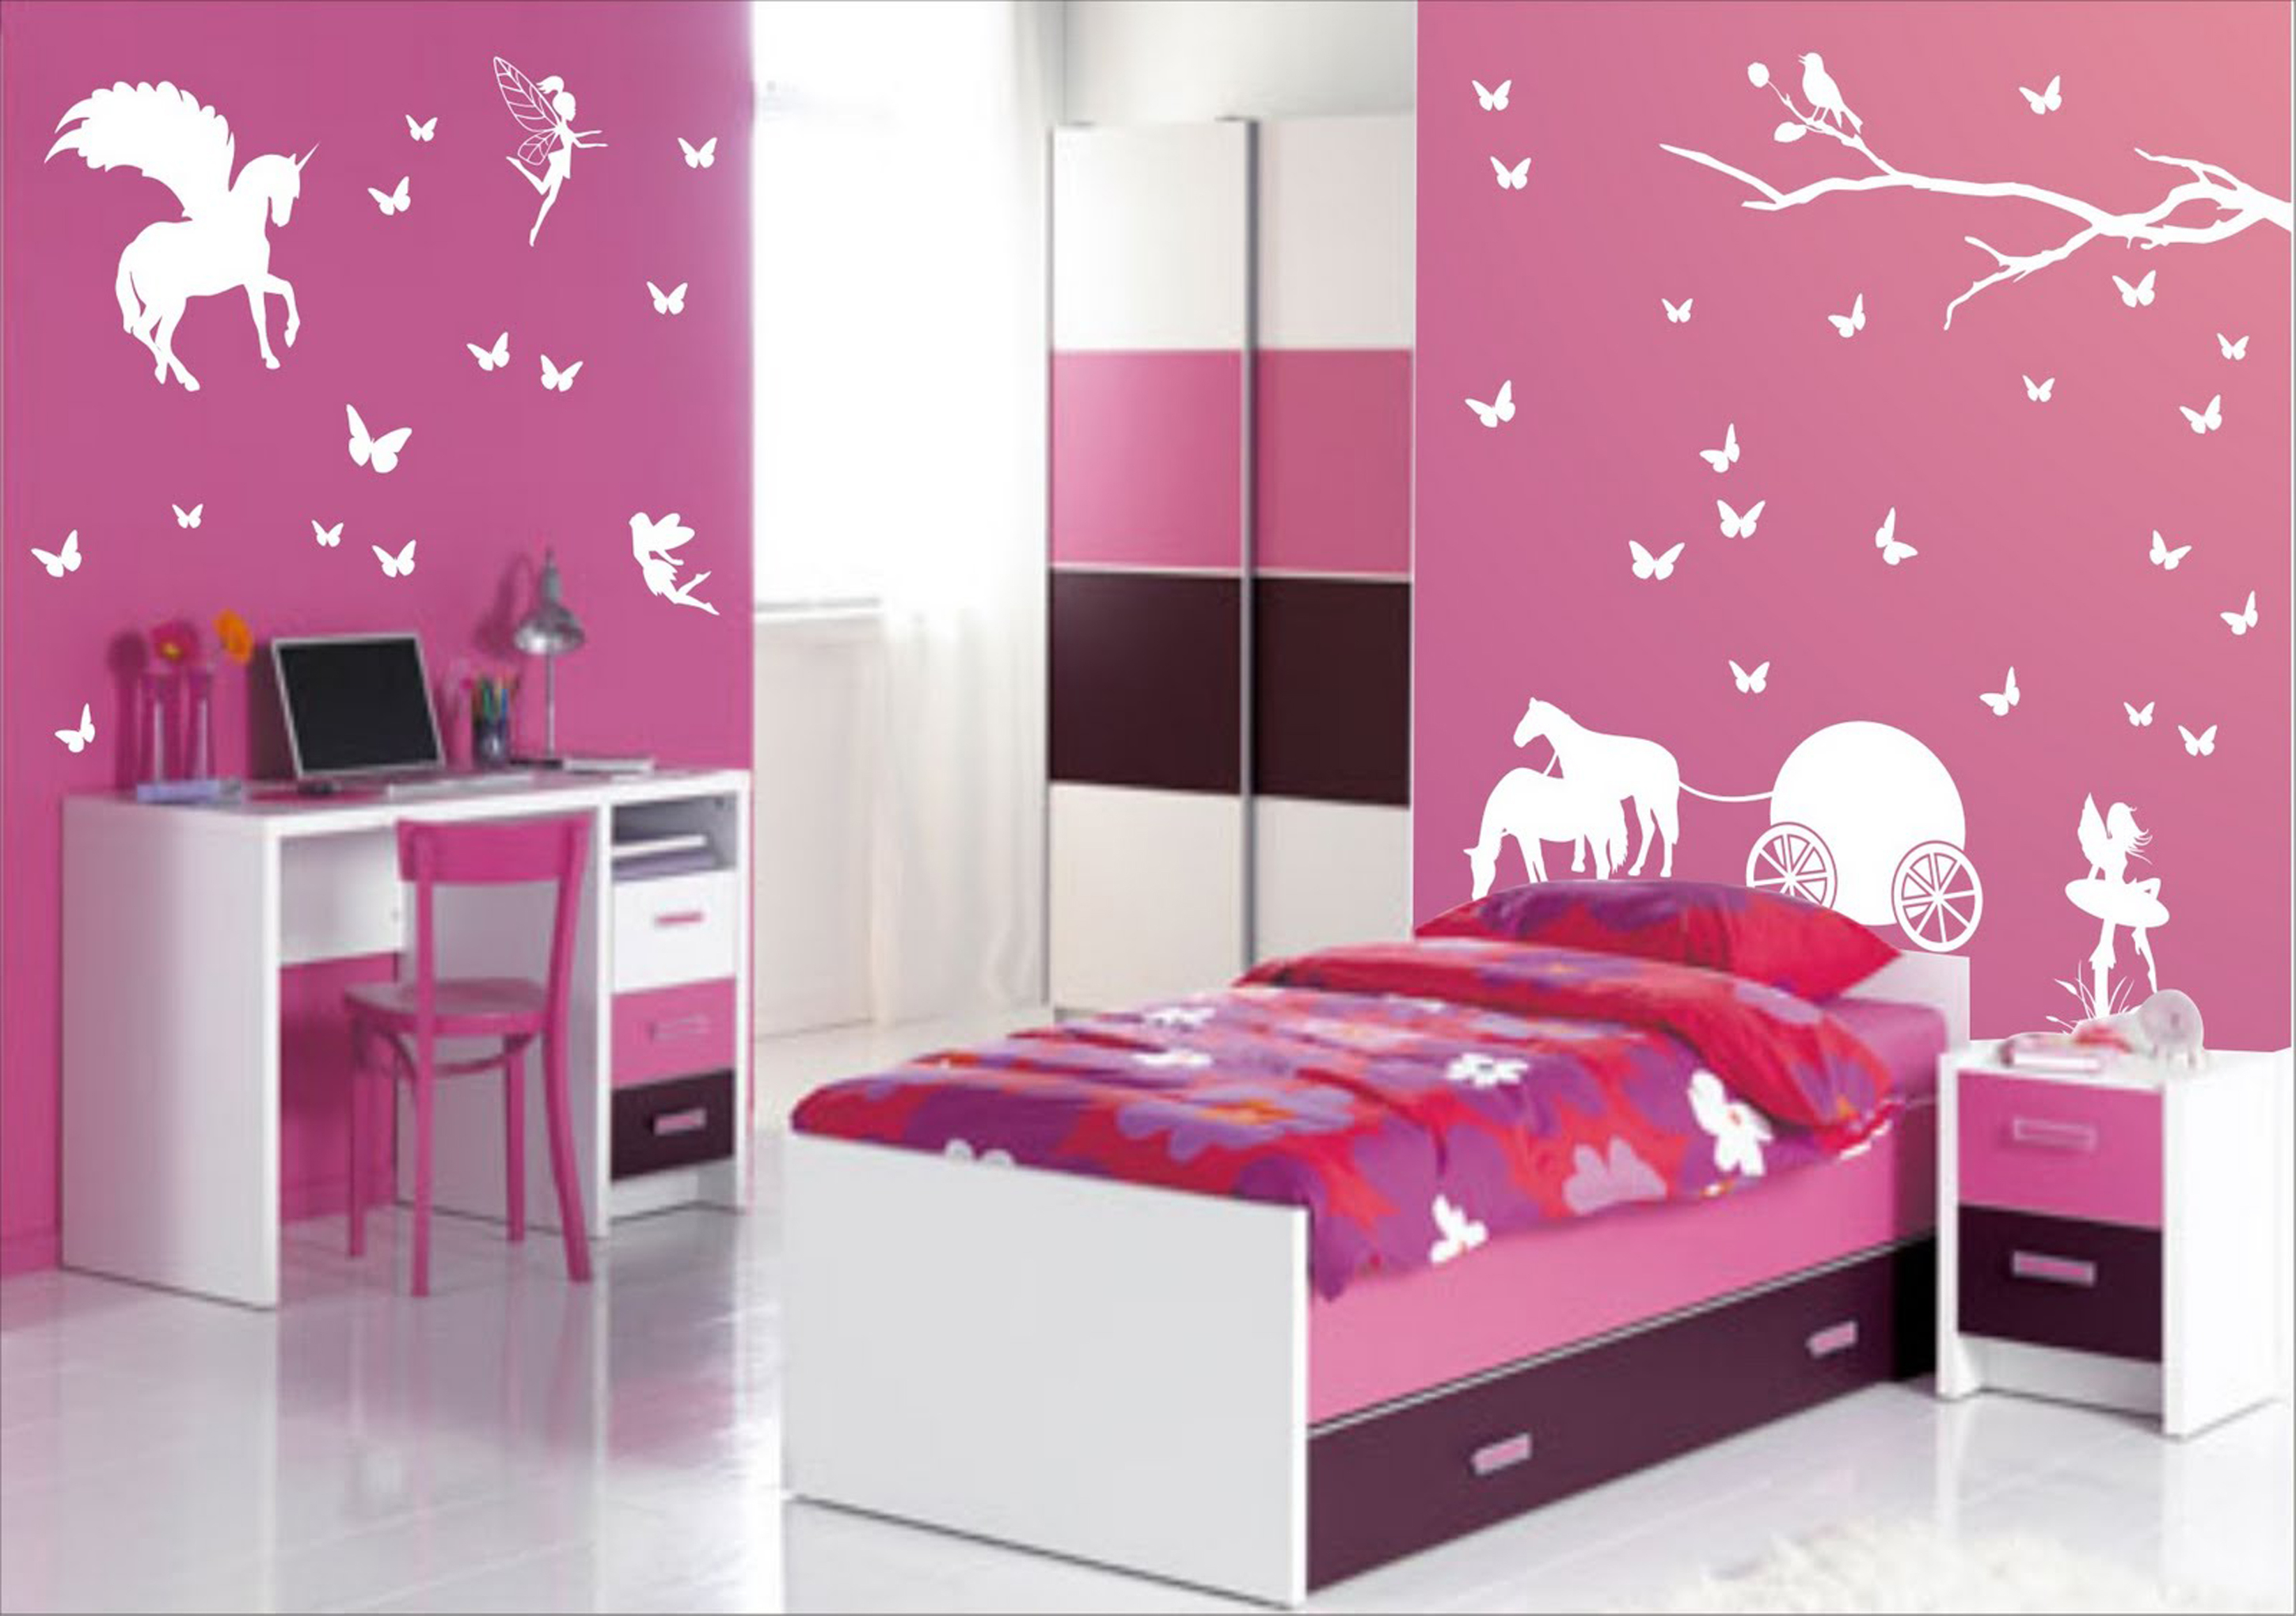 Minimalist Girls Design Red Bed Cover With Purple Floral Motive And White Study Table With Pink Chair Together With Pink Wall With White Butterfly Motive Cool Design Bedroom Ideas (View 1 of 25)